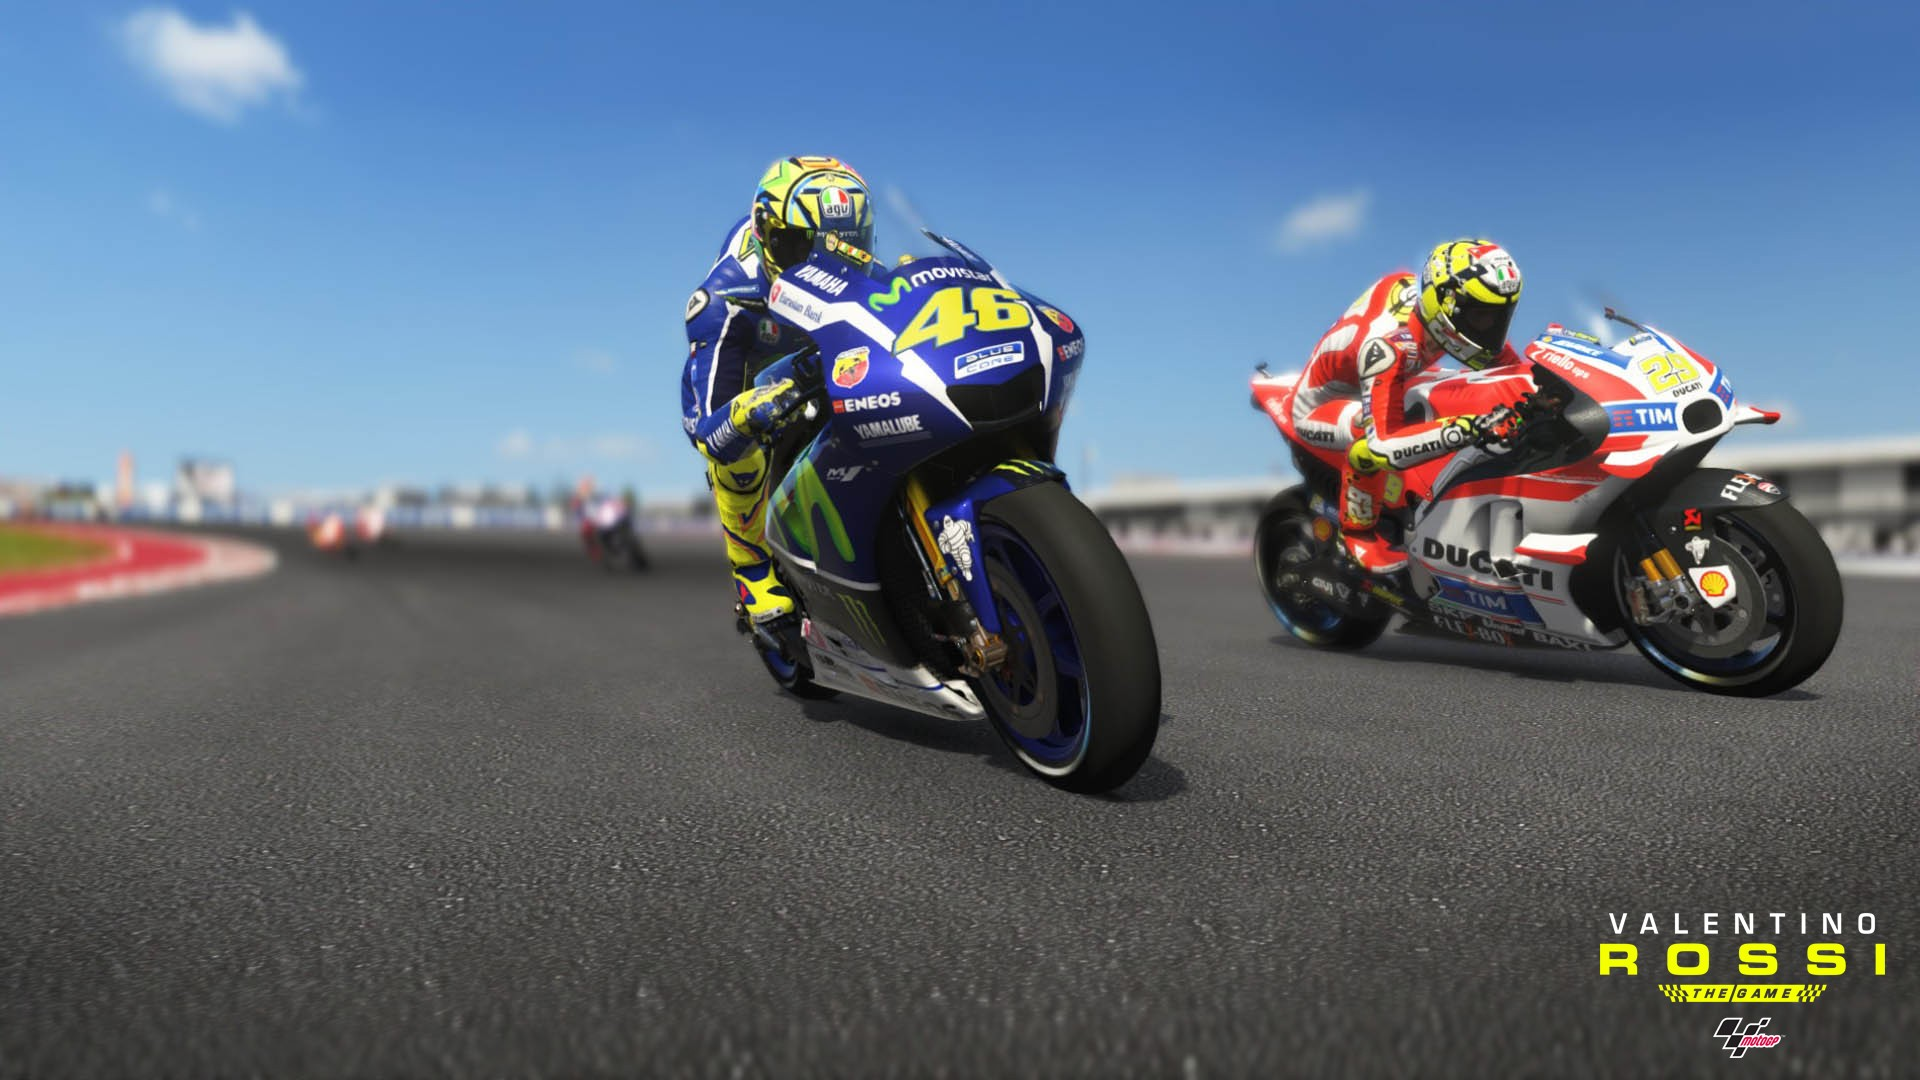 Ps4 Wallpaper Hd Buy Valentino Rossi The Game Steam